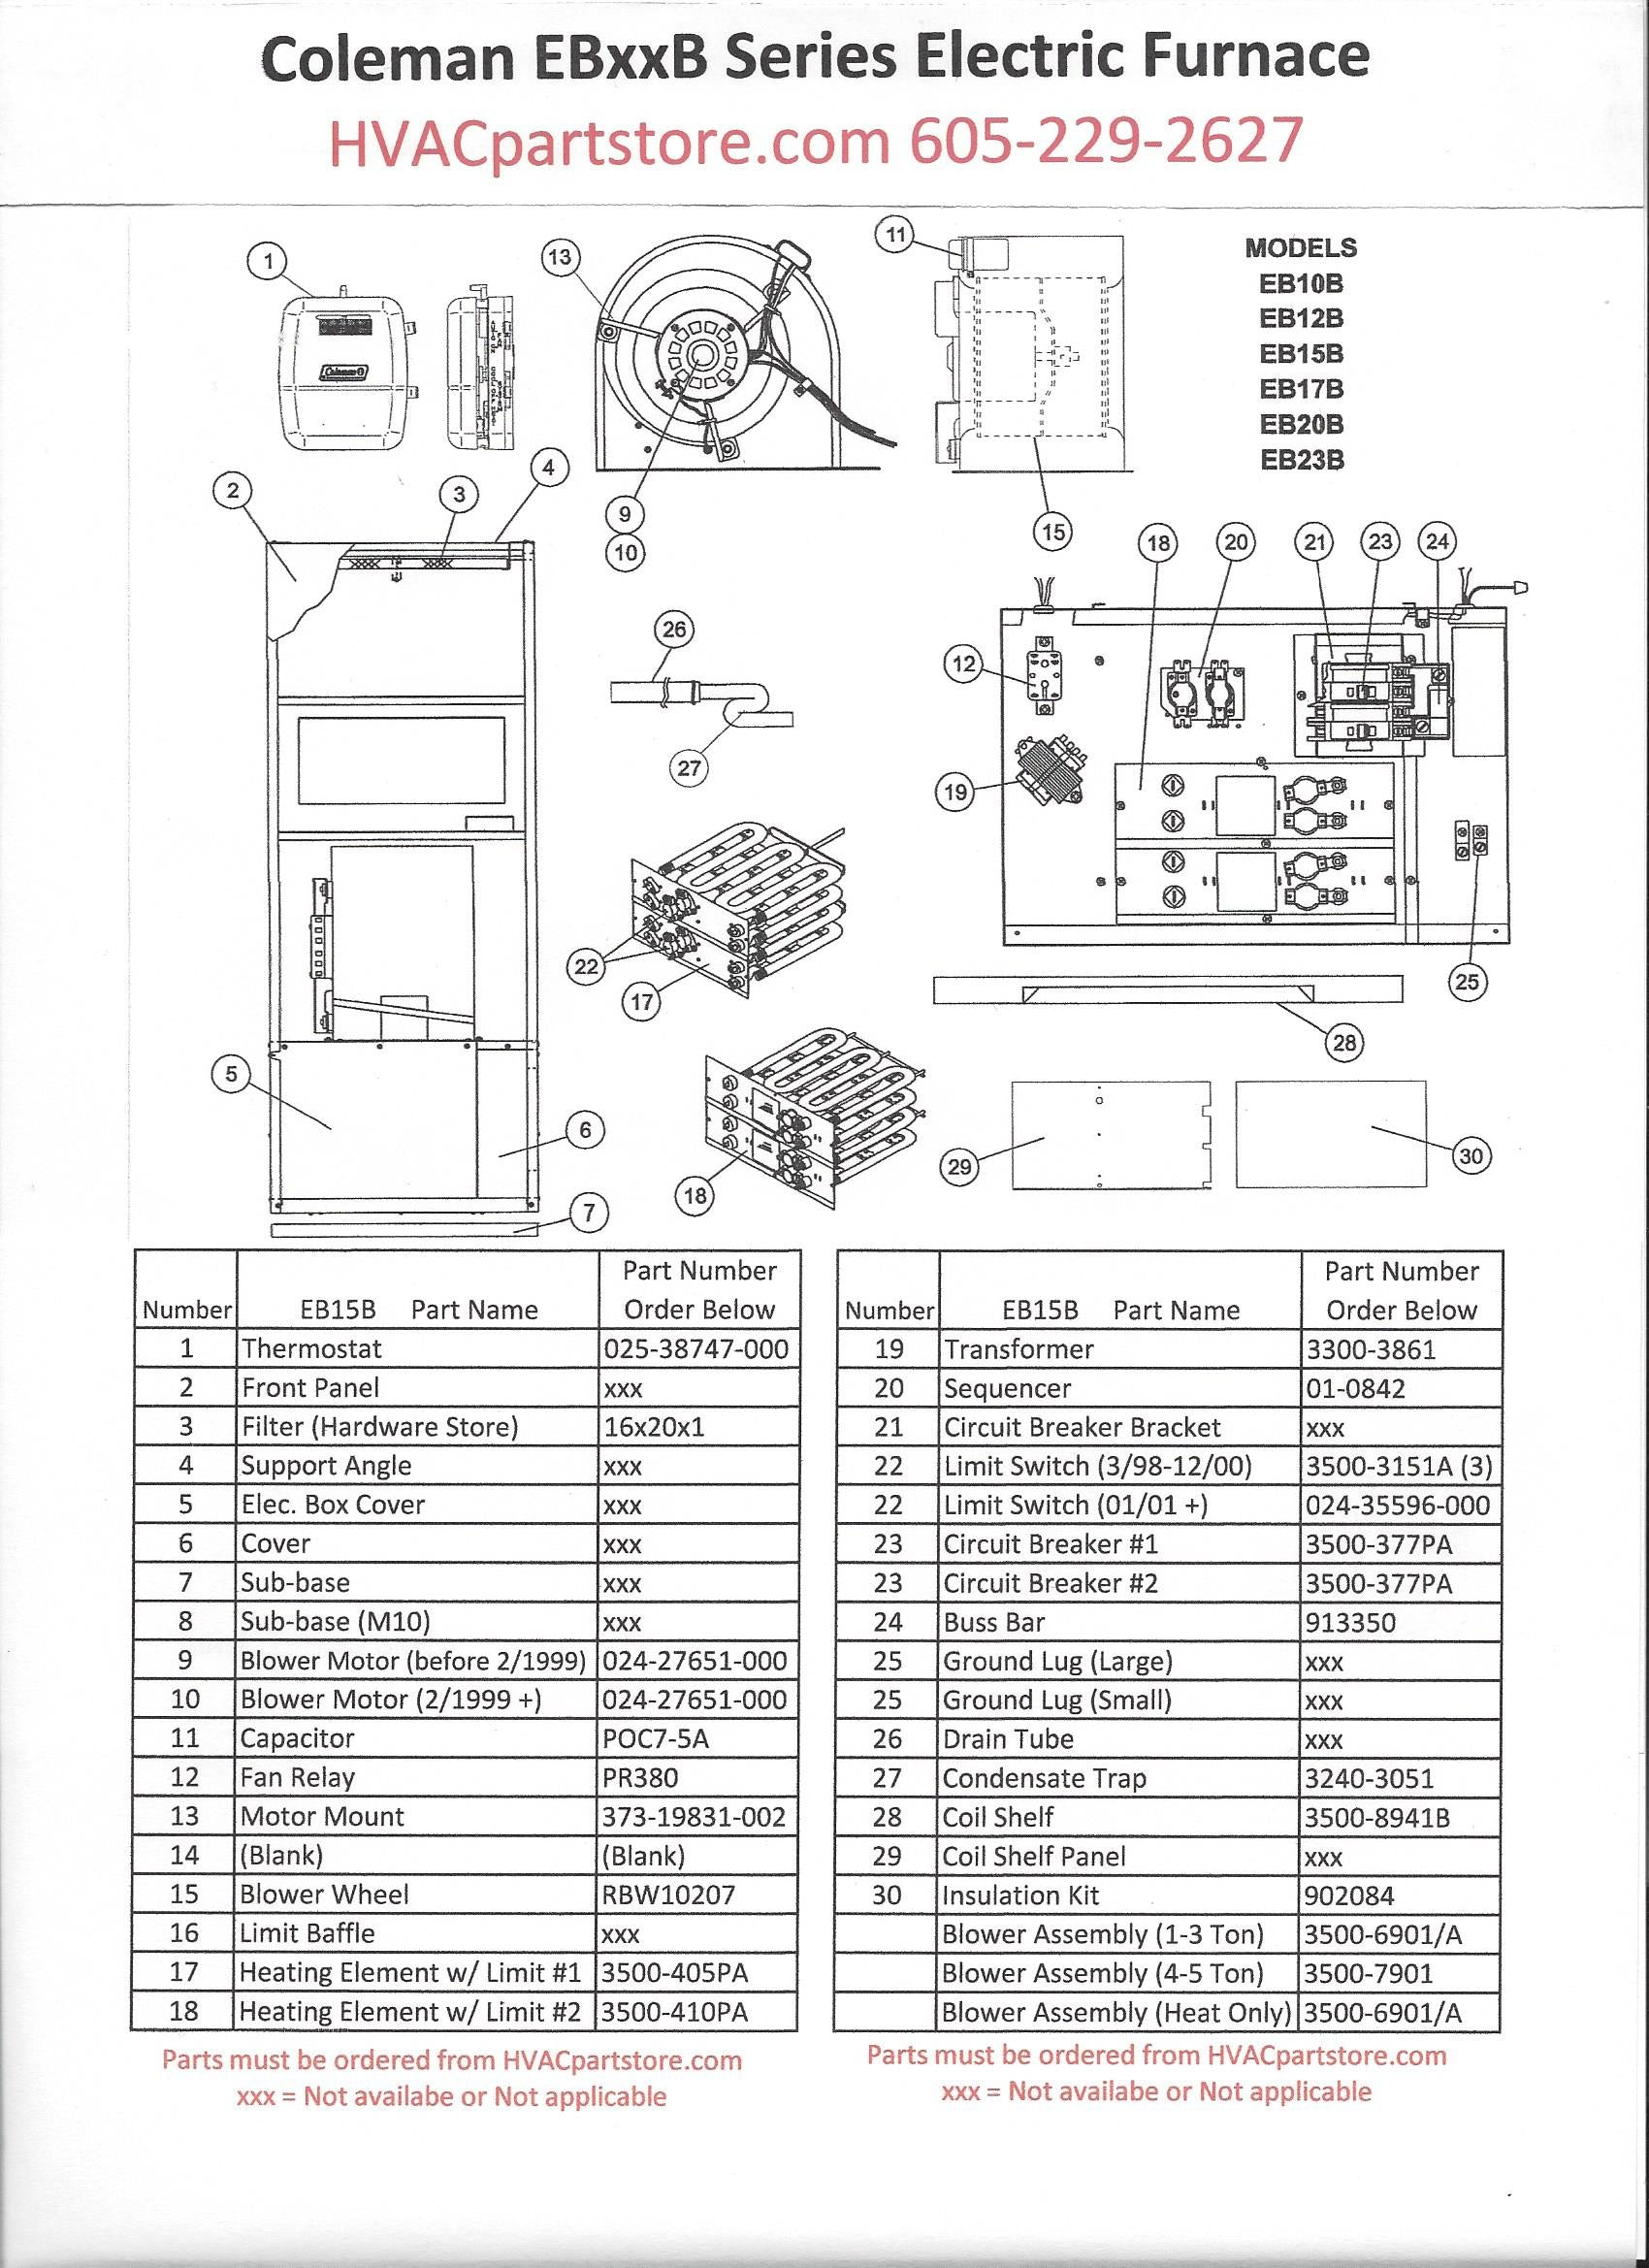 EB15Bparts?403081896817250070 eb15b coleman electric furnace parts hvacpartstore coleman eb15b wiring diagram at bakdesigns.co